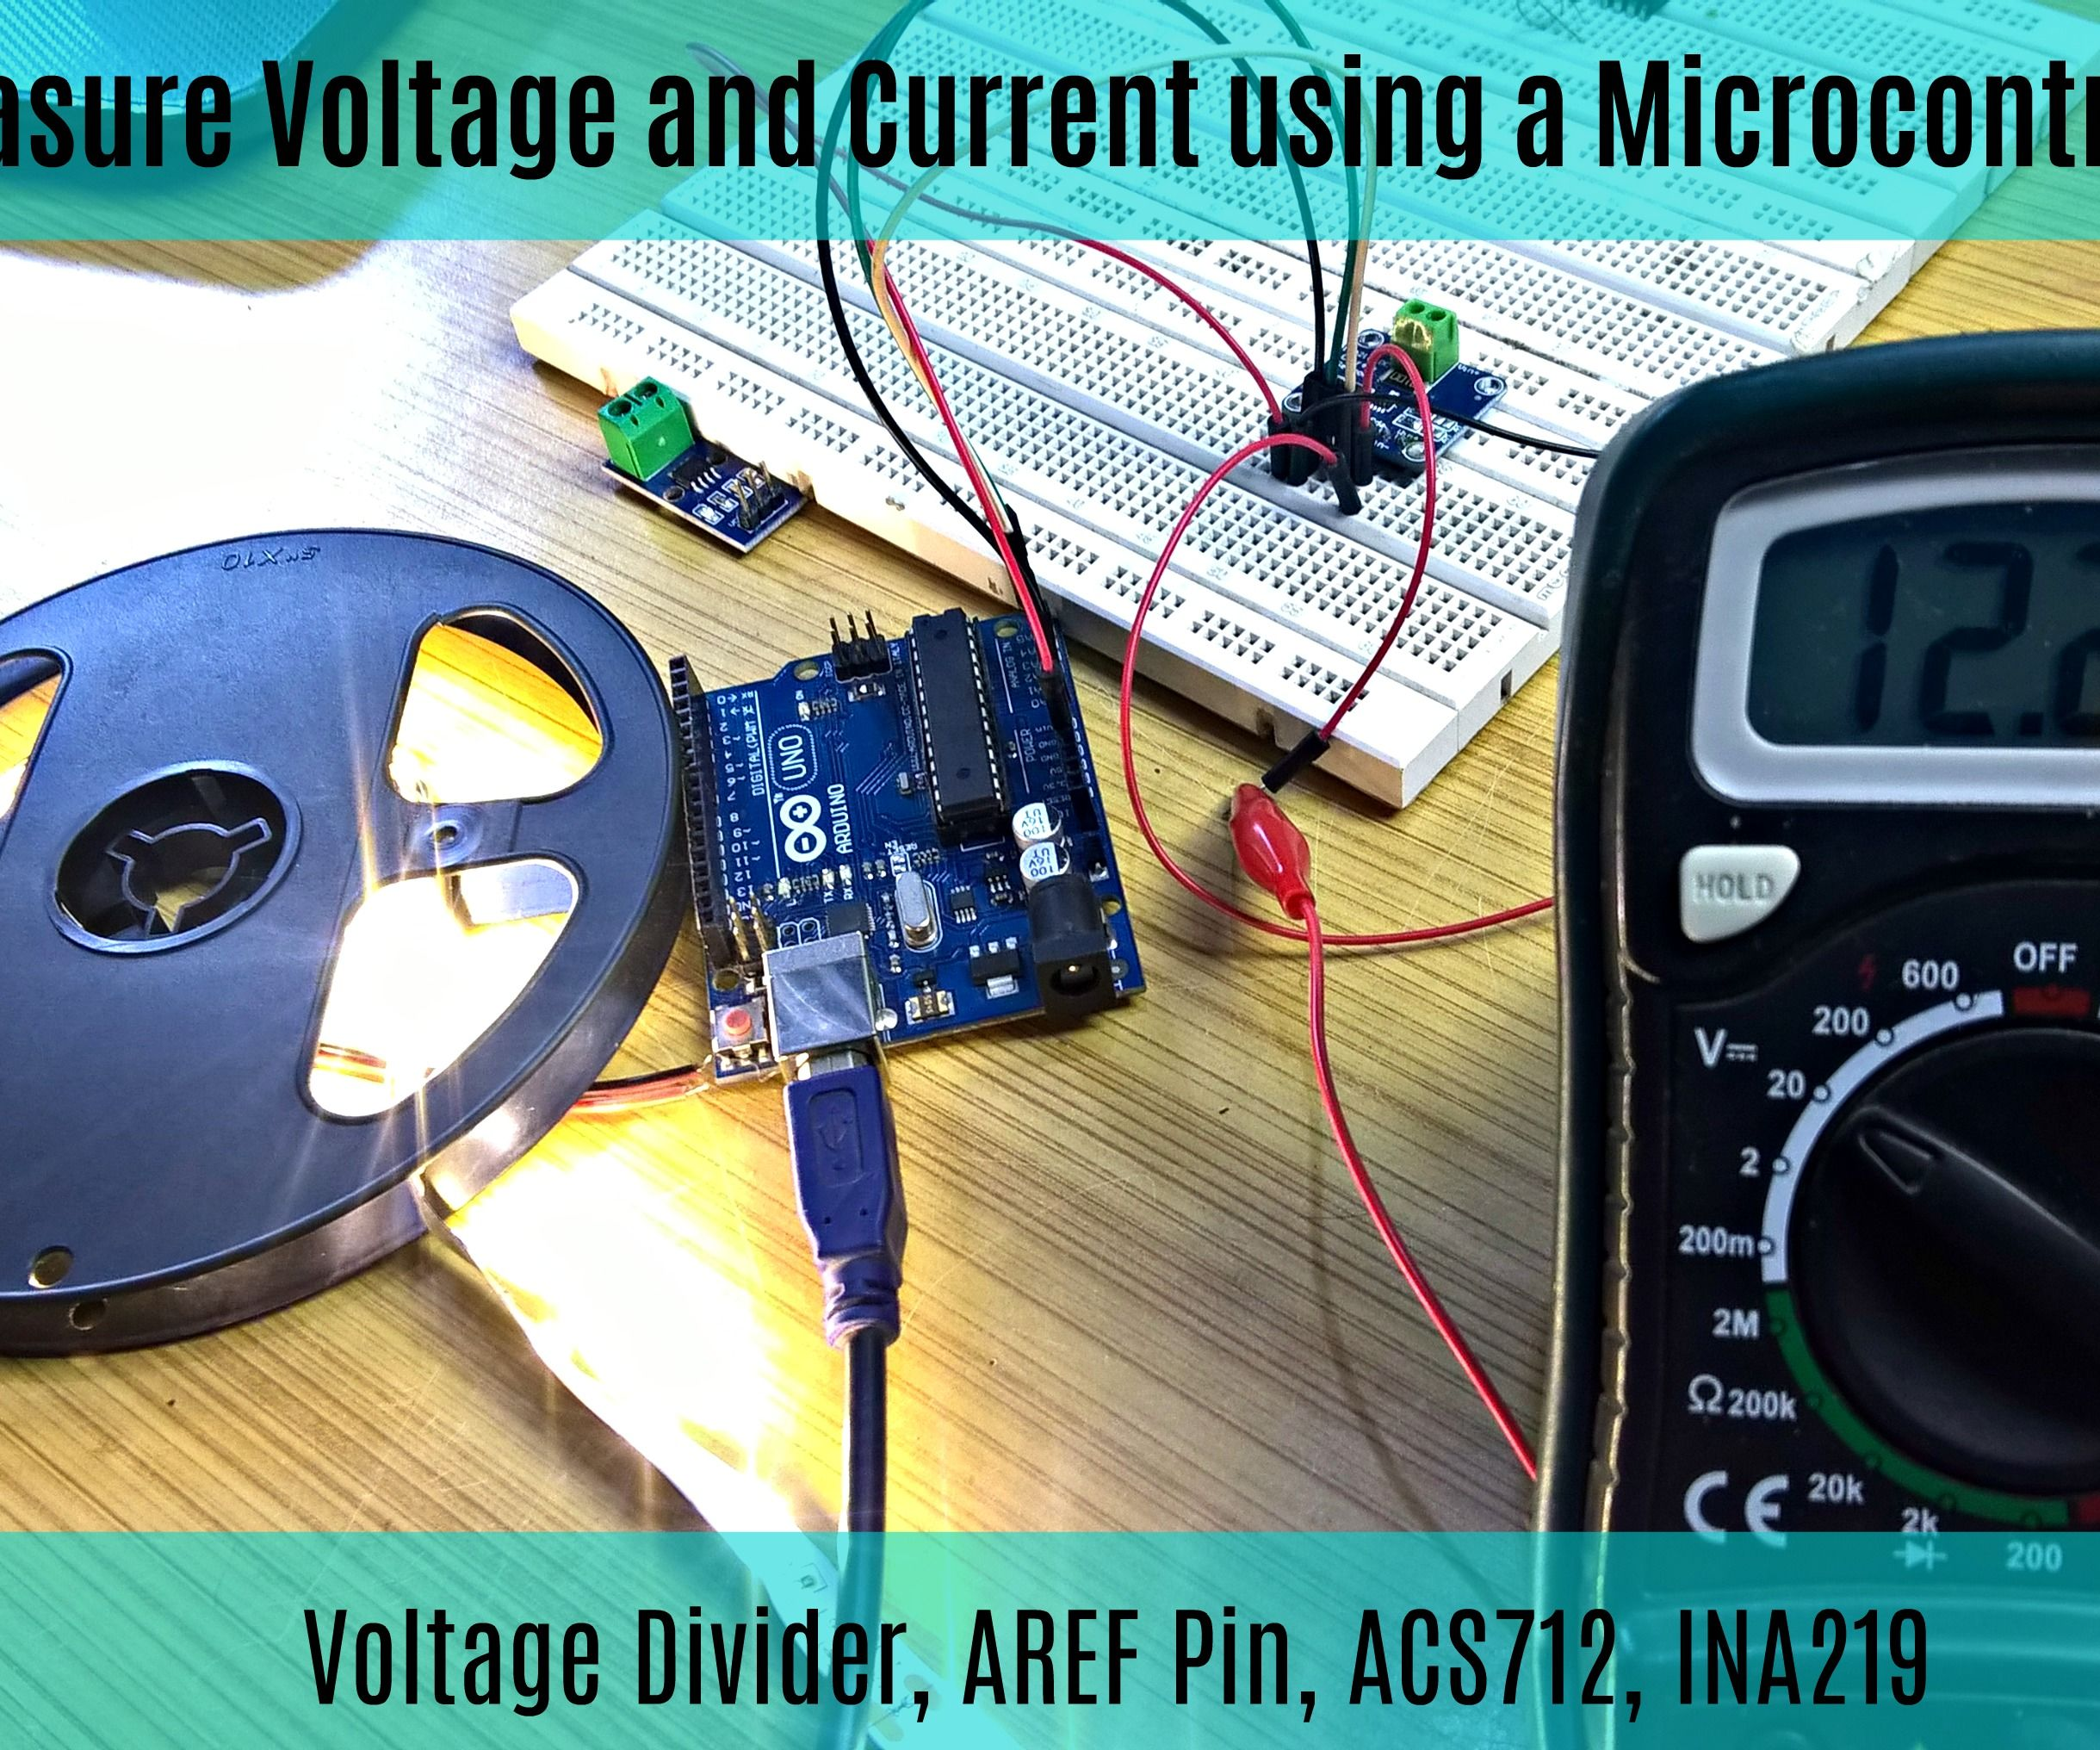 Measure Current and Voltage Using a Microcontroller || Voltage Divider || ACS712 || INA219